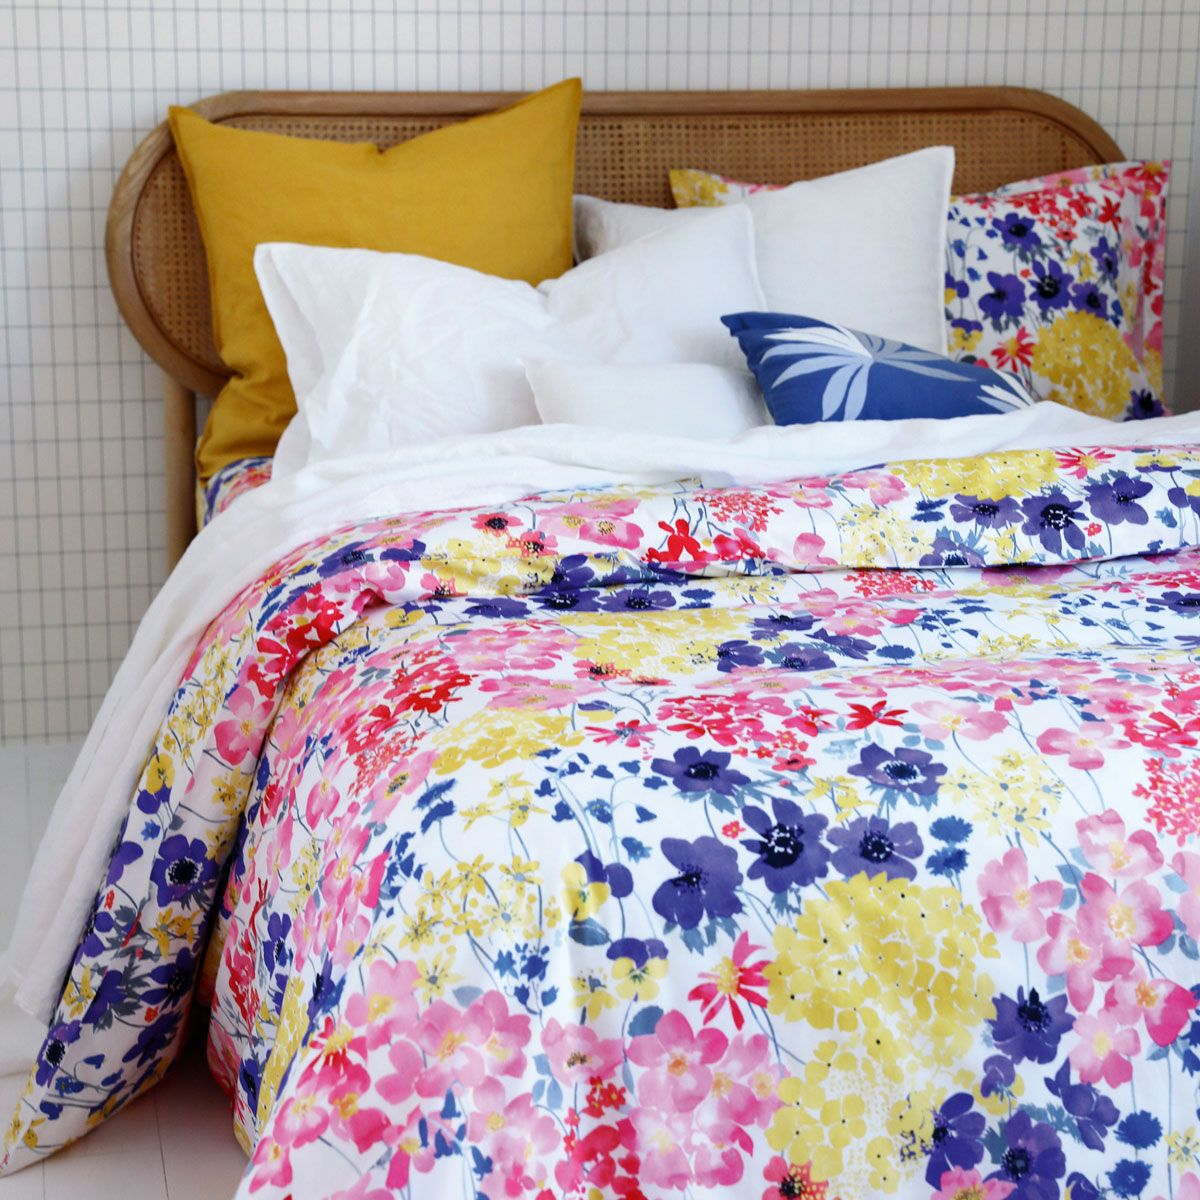 8 bed linen sets for spring